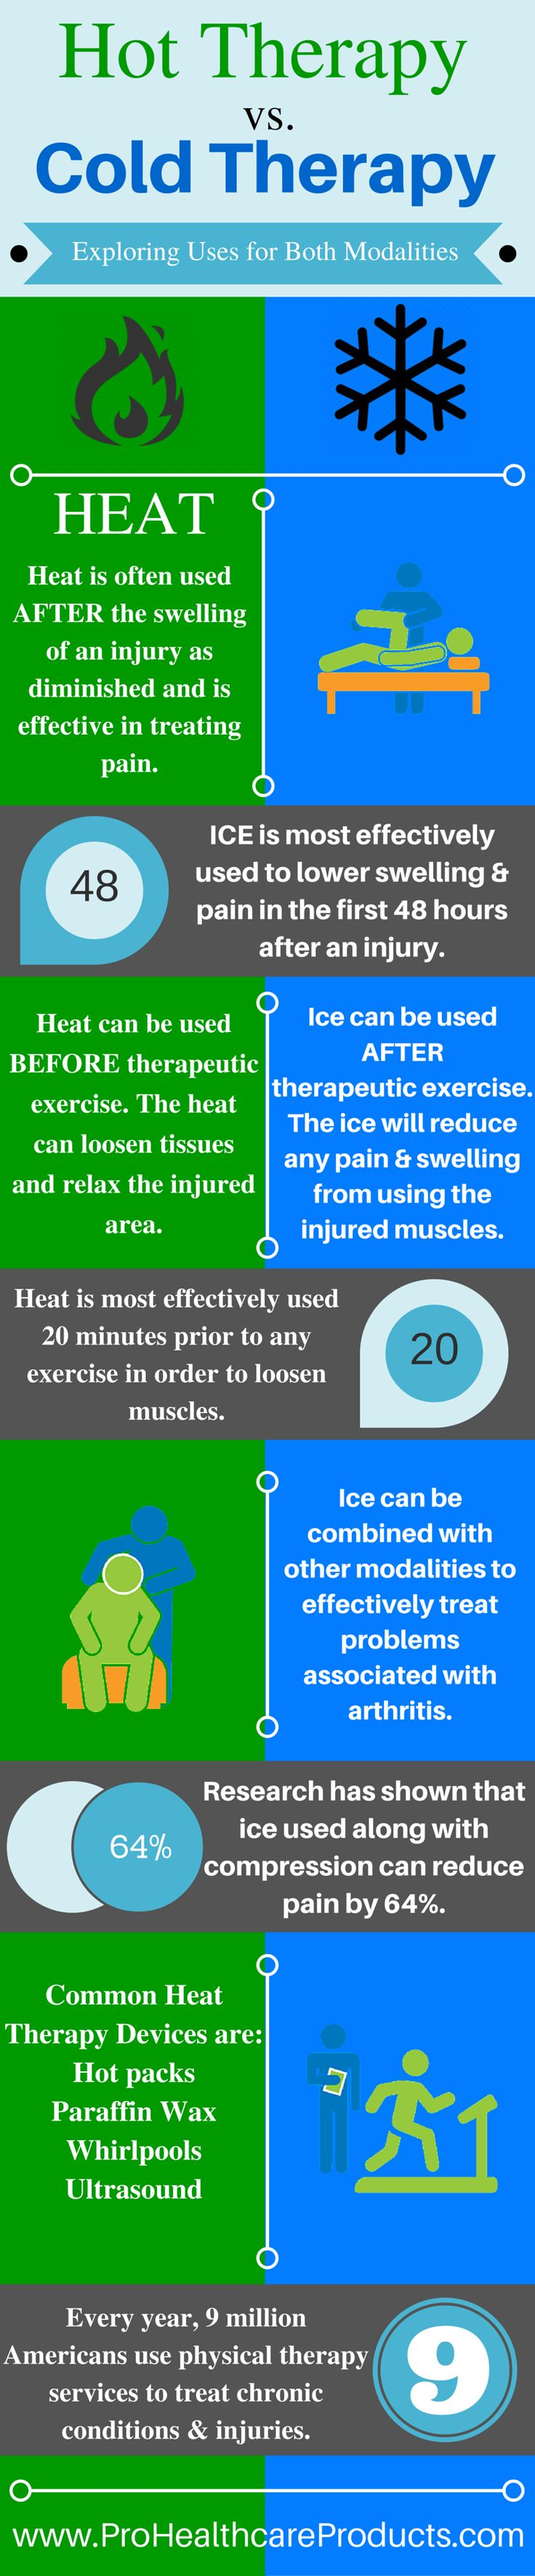 Hot Therapy vs. Cold Therapy Infographic